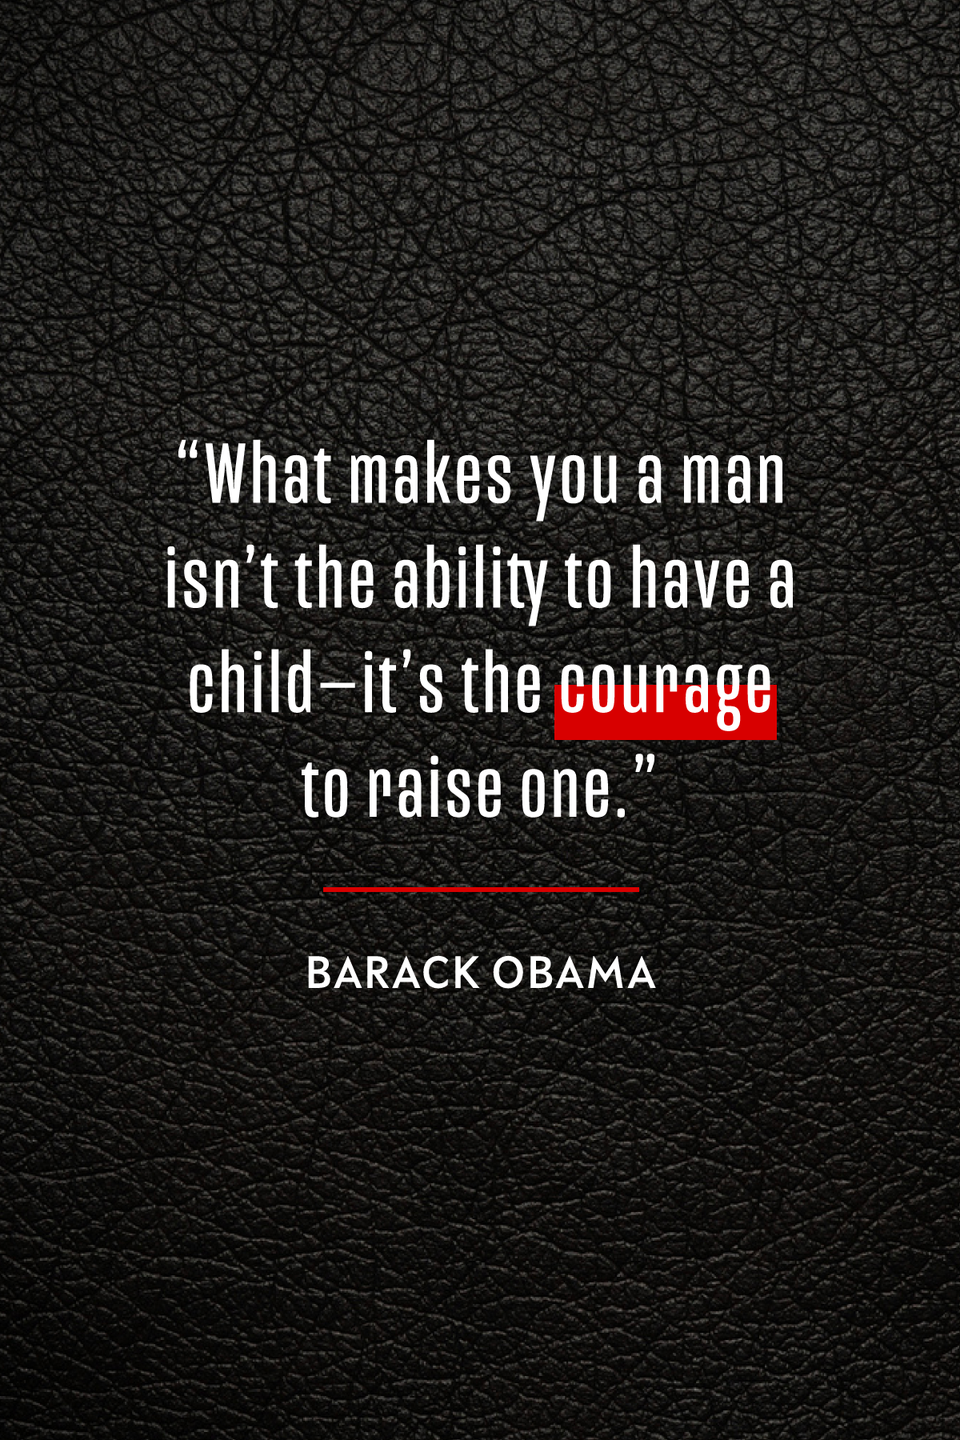 """<p>In his <a href=""""https://obamawhitehouse.archives.gov/the-press-office/2014/06/14/weekly-address-president-wishes-americas-dads-happy-fathers-day"""" rel=""""nofollow noopener"""" target=""""_blank"""" data-ylk=""""slk:2014 Father's Day address"""" class=""""link rapid-noclick-resp"""">2014 Father's Day address</a>, <a href=""""https://www.oprahmag.com/entertainment/books/a26869829/michelle-obama-john-green-becoming-marriage-interview/"""" rel=""""nofollow noopener"""" target=""""_blank"""" data-ylk=""""slk:President Barack Obama"""" class=""""link rapid-noclick-resp"""">President Barack Obama</a> said, """"What makes you a man isn't the ability to have a child—it's the courage to raise one.""""</p>"""